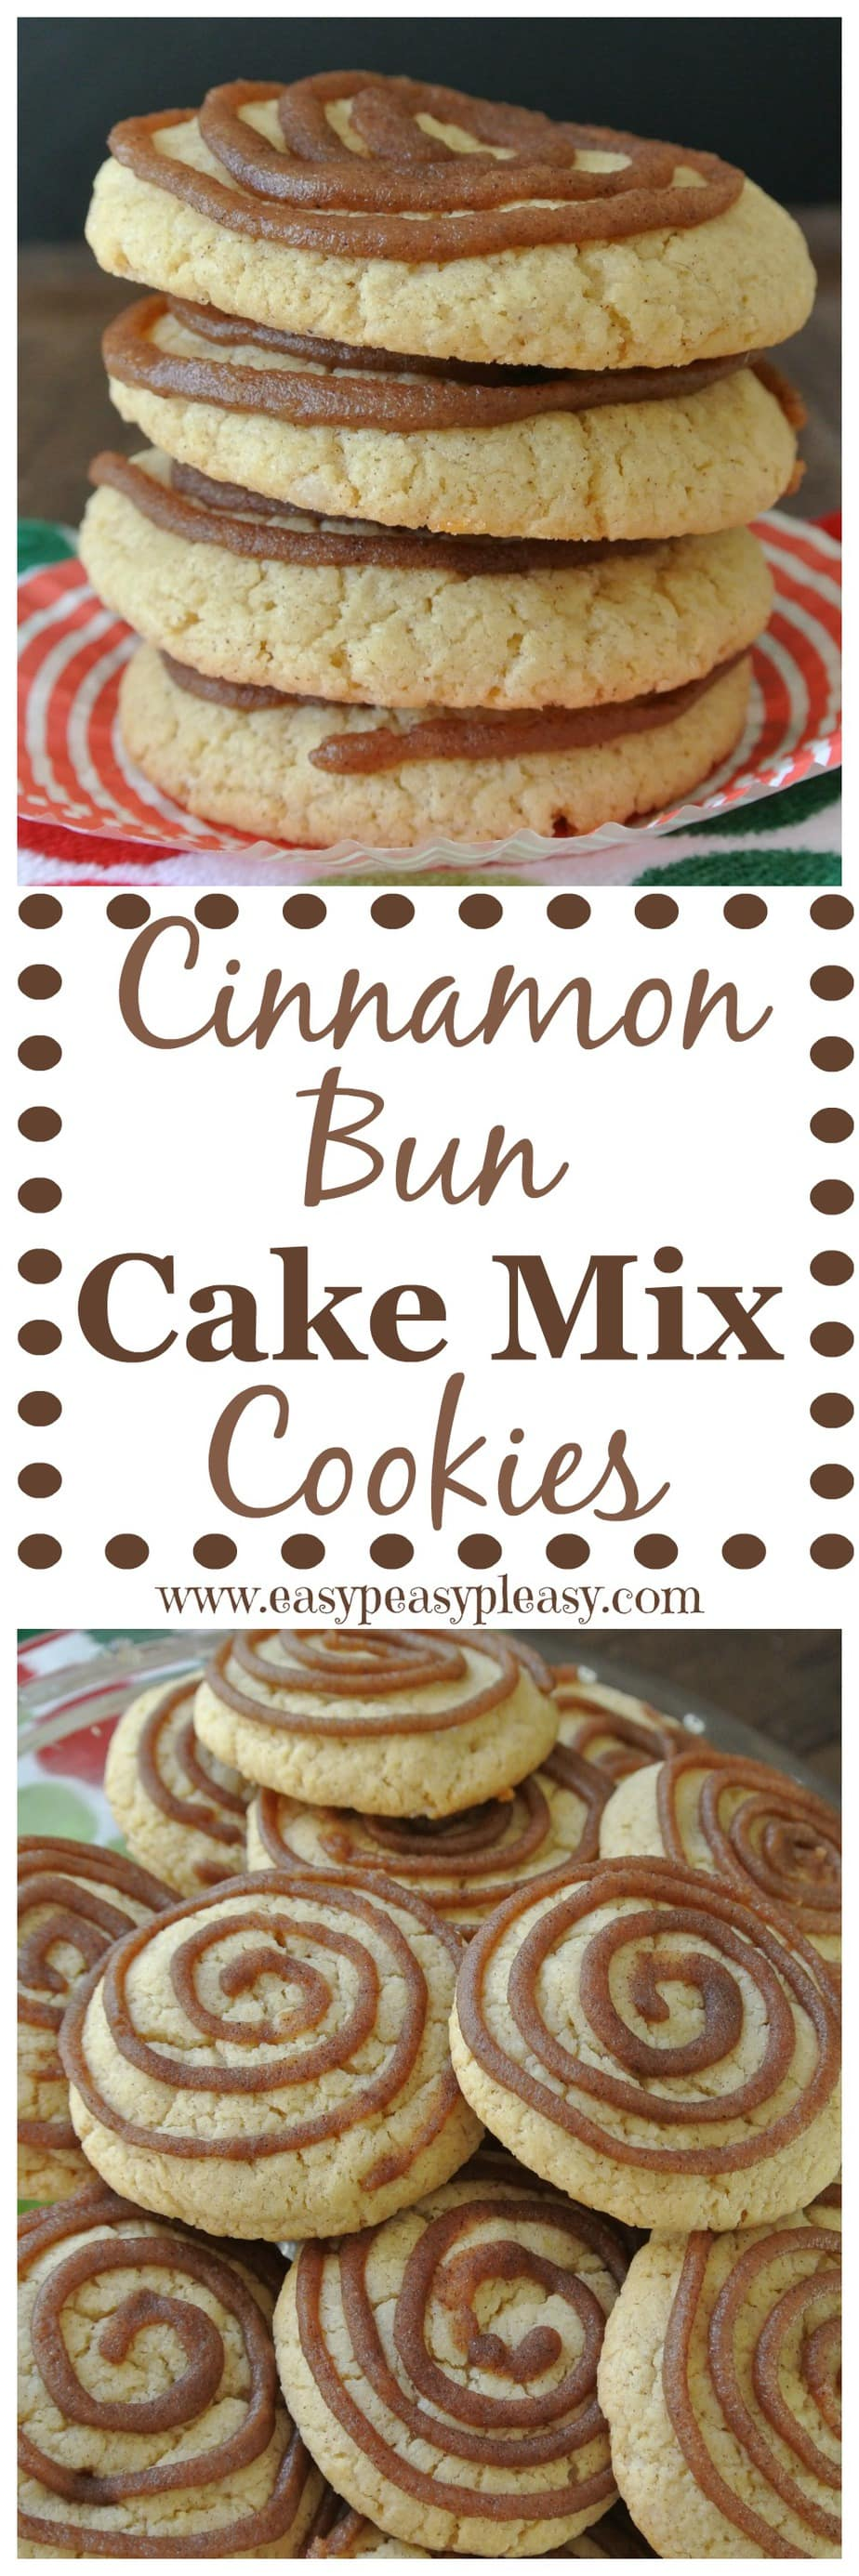 Cinnamon Bun Cake Mix Cookies are easy cookies made from a cake mix when you don't have the ingredients to make from scratch.